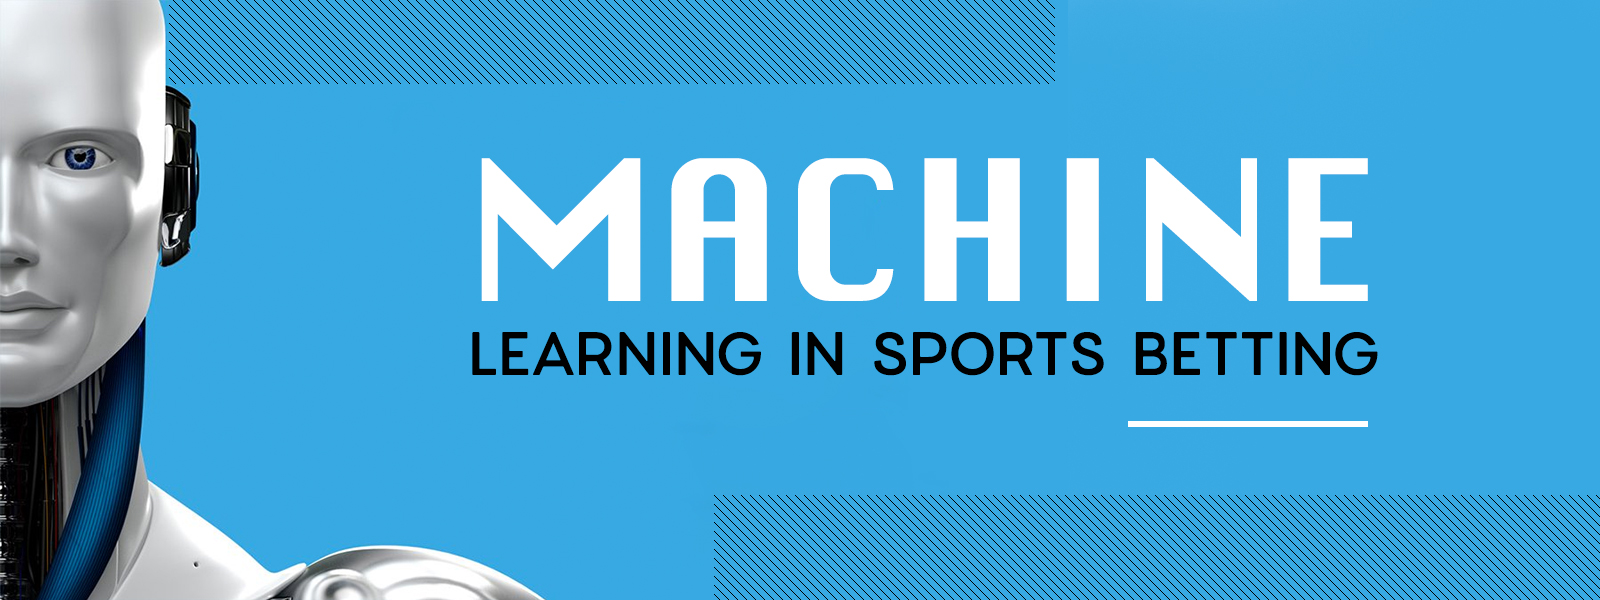 Machine Learning In Sports Betting